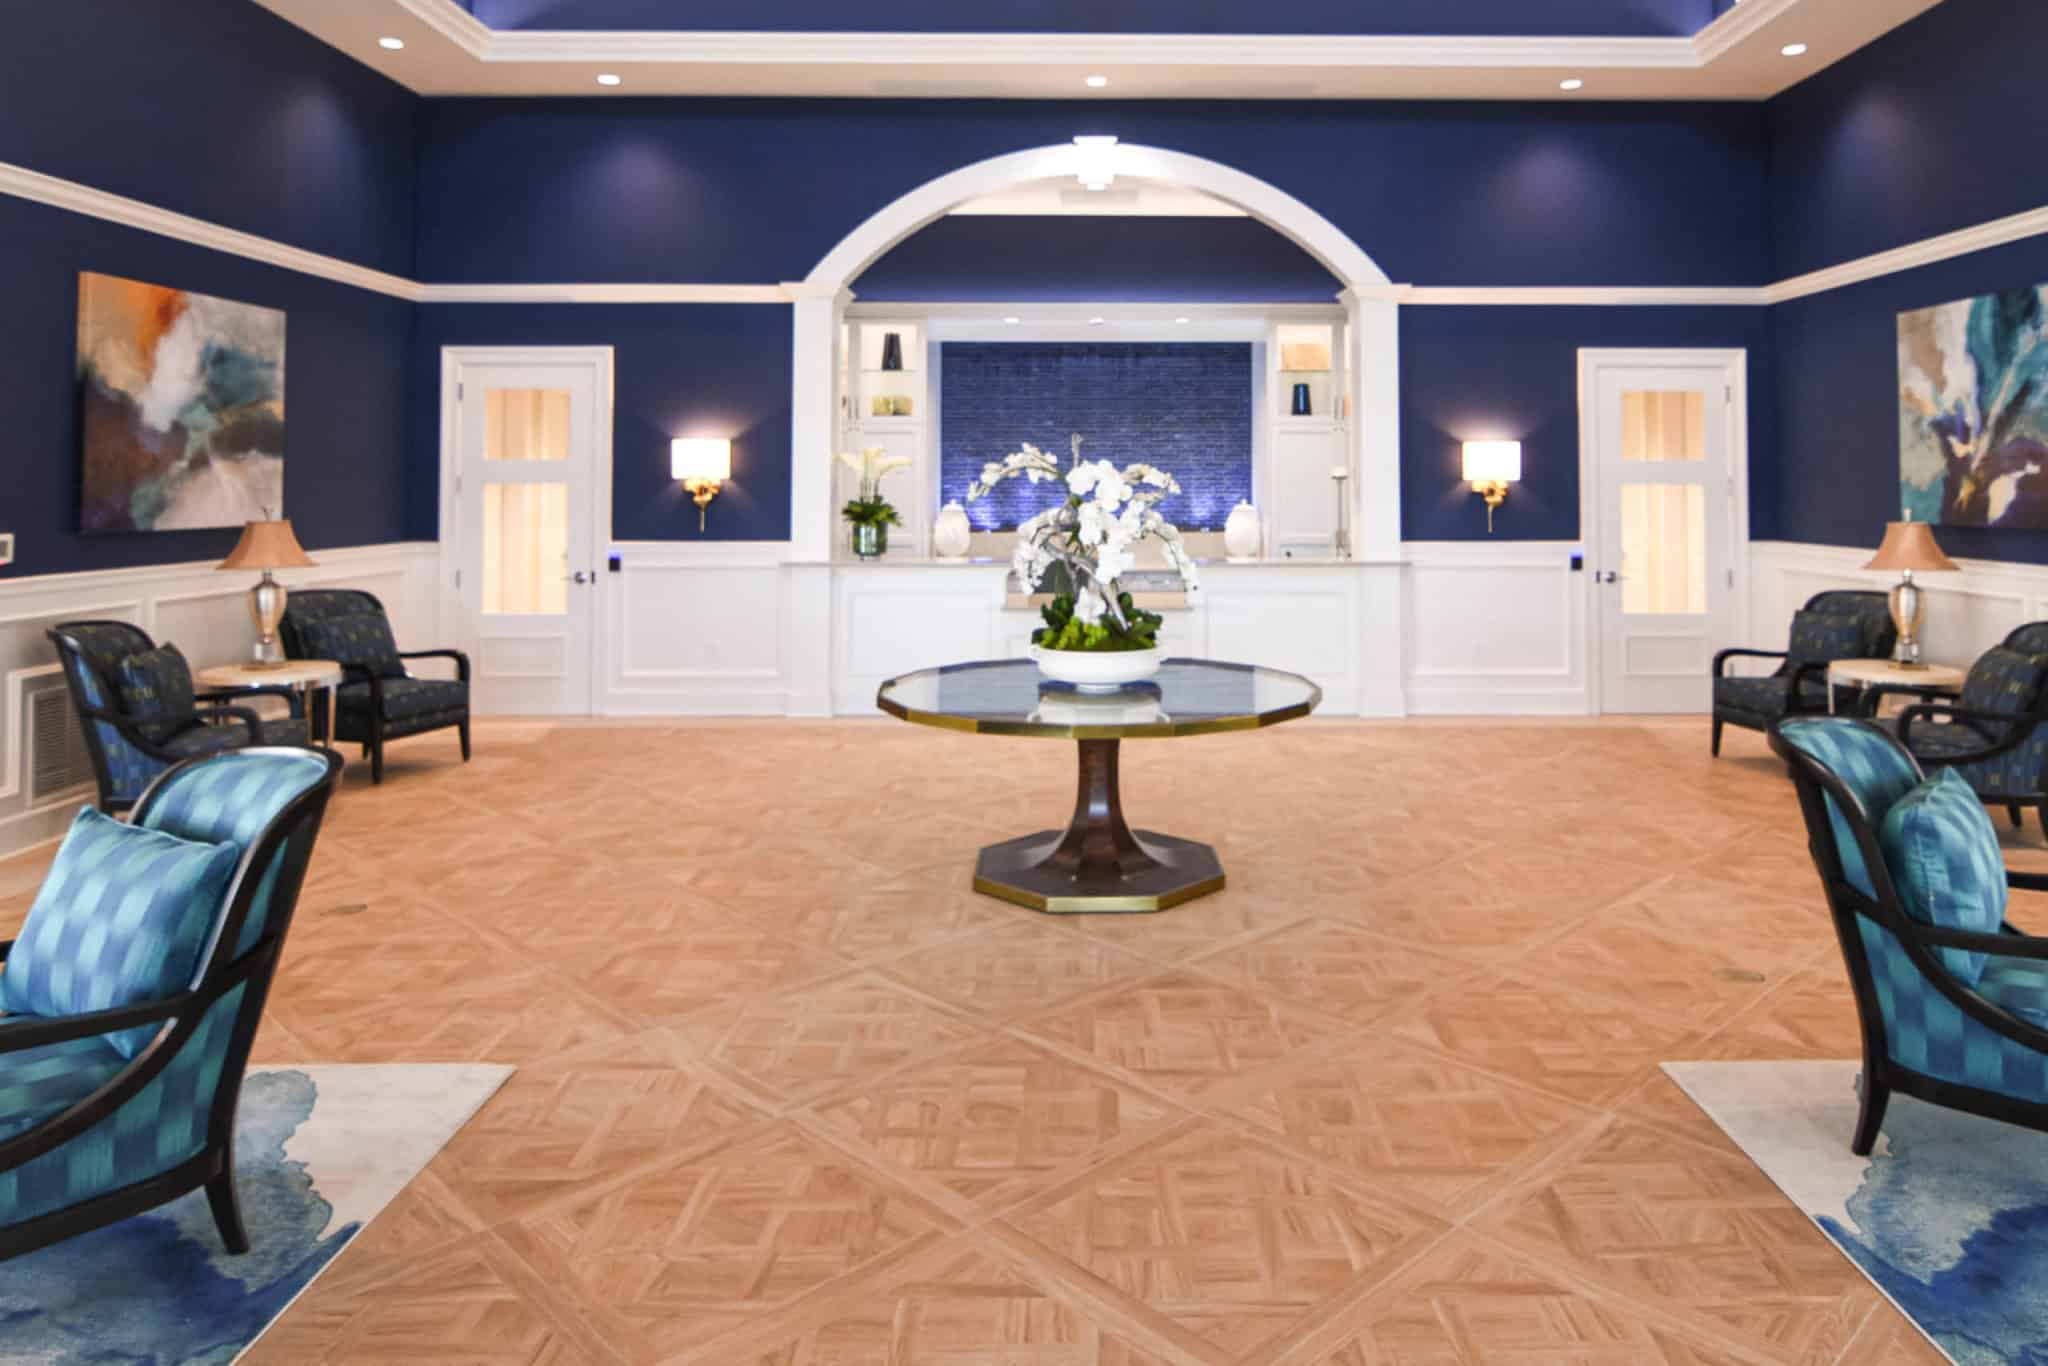 Elegant reception area